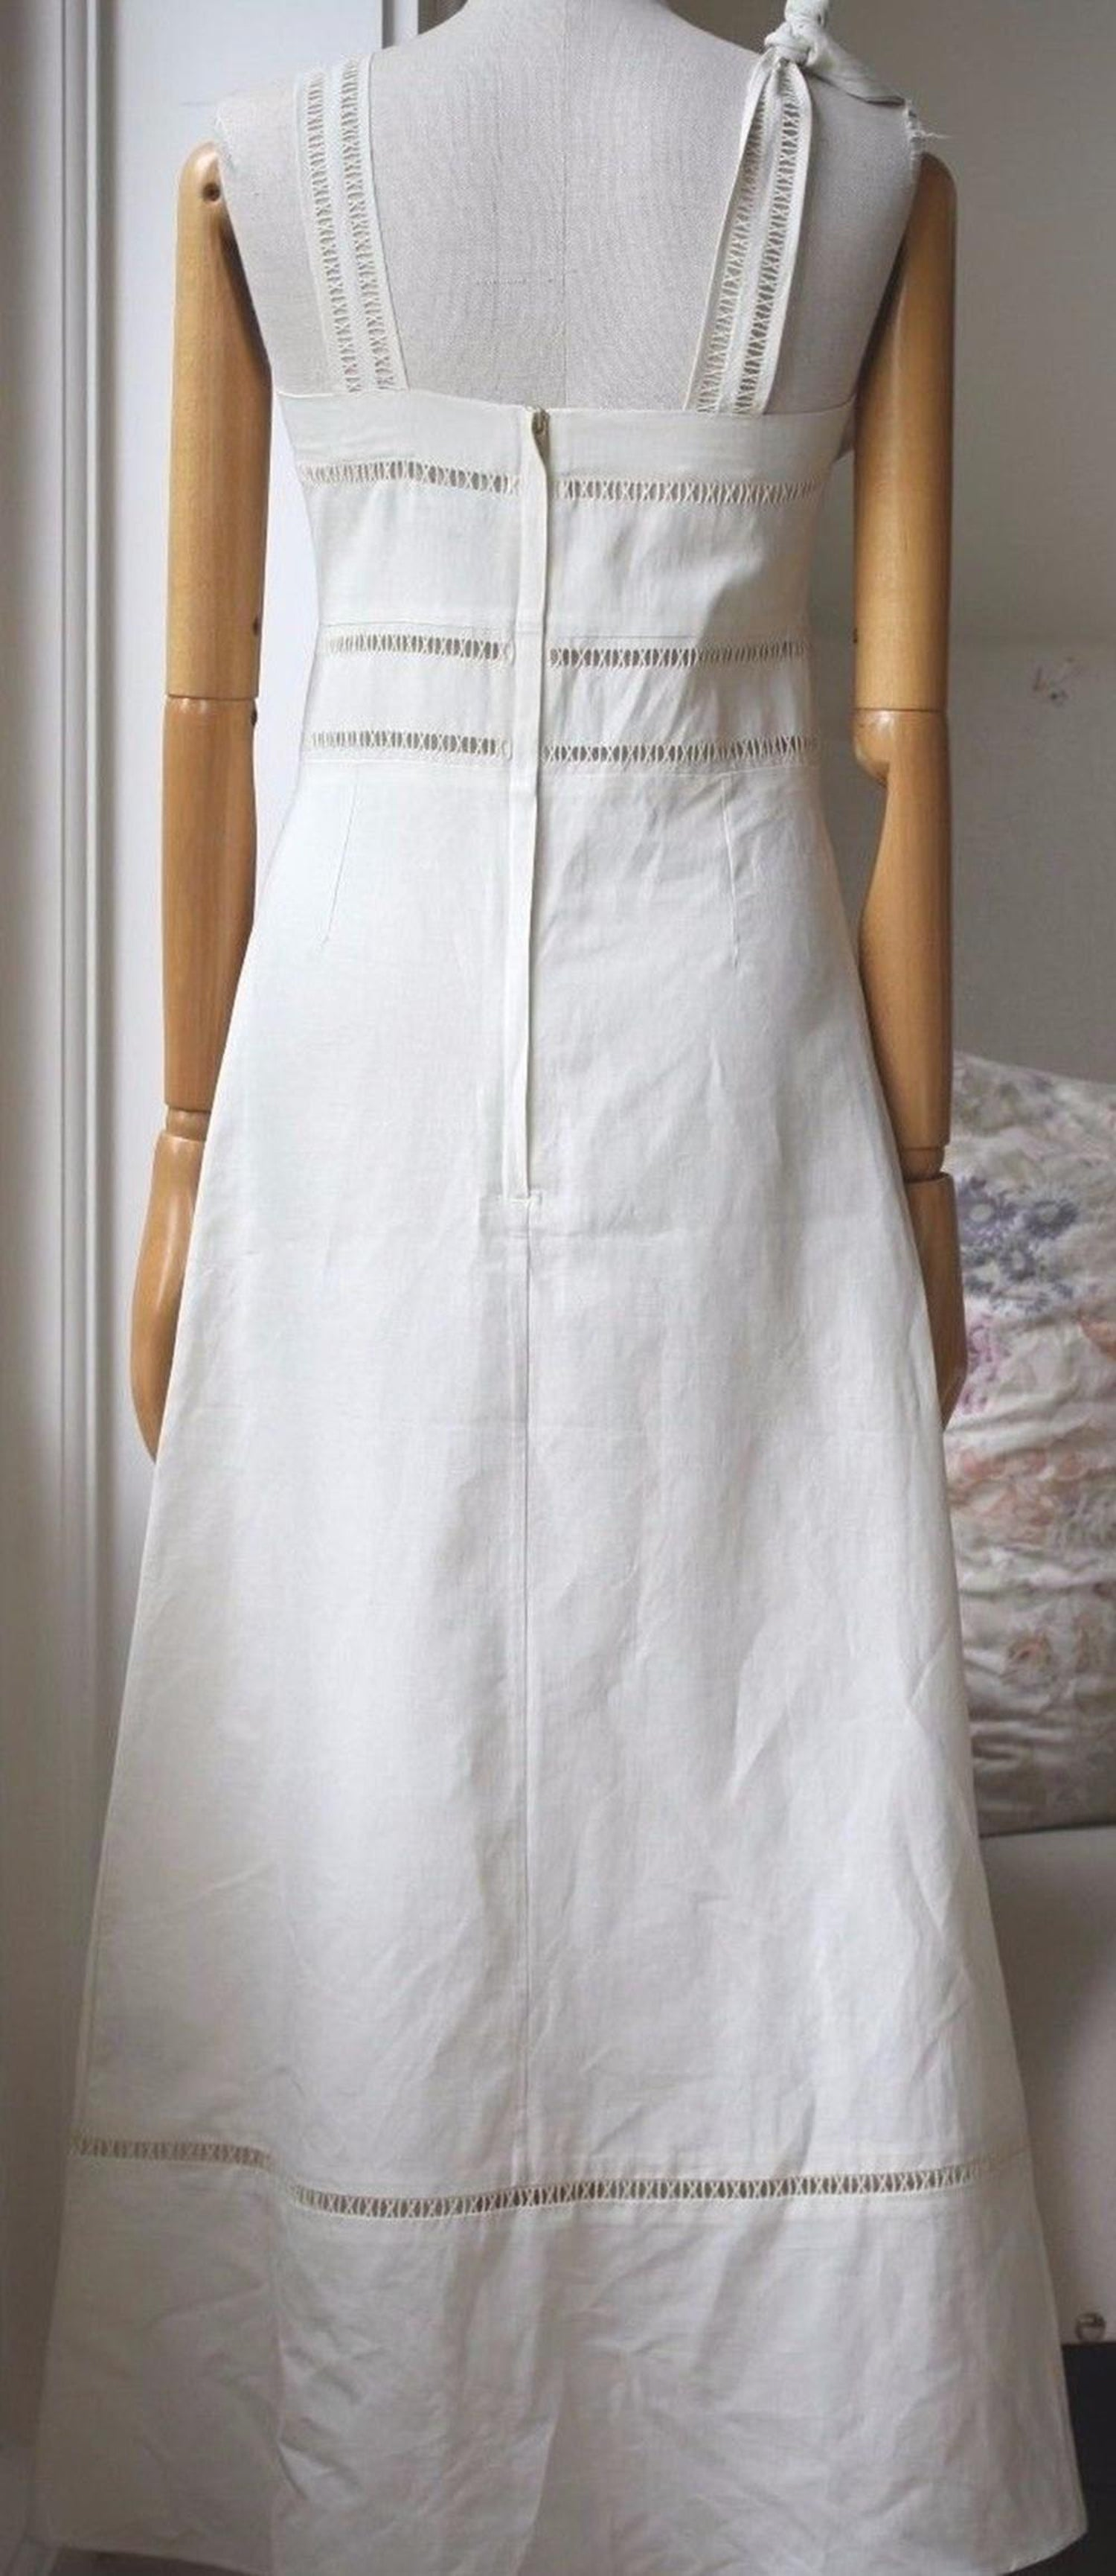 acd73b354bc Isabel Marant Reign Linen and Cotton-Blend Dress For Sale at 1stdibs